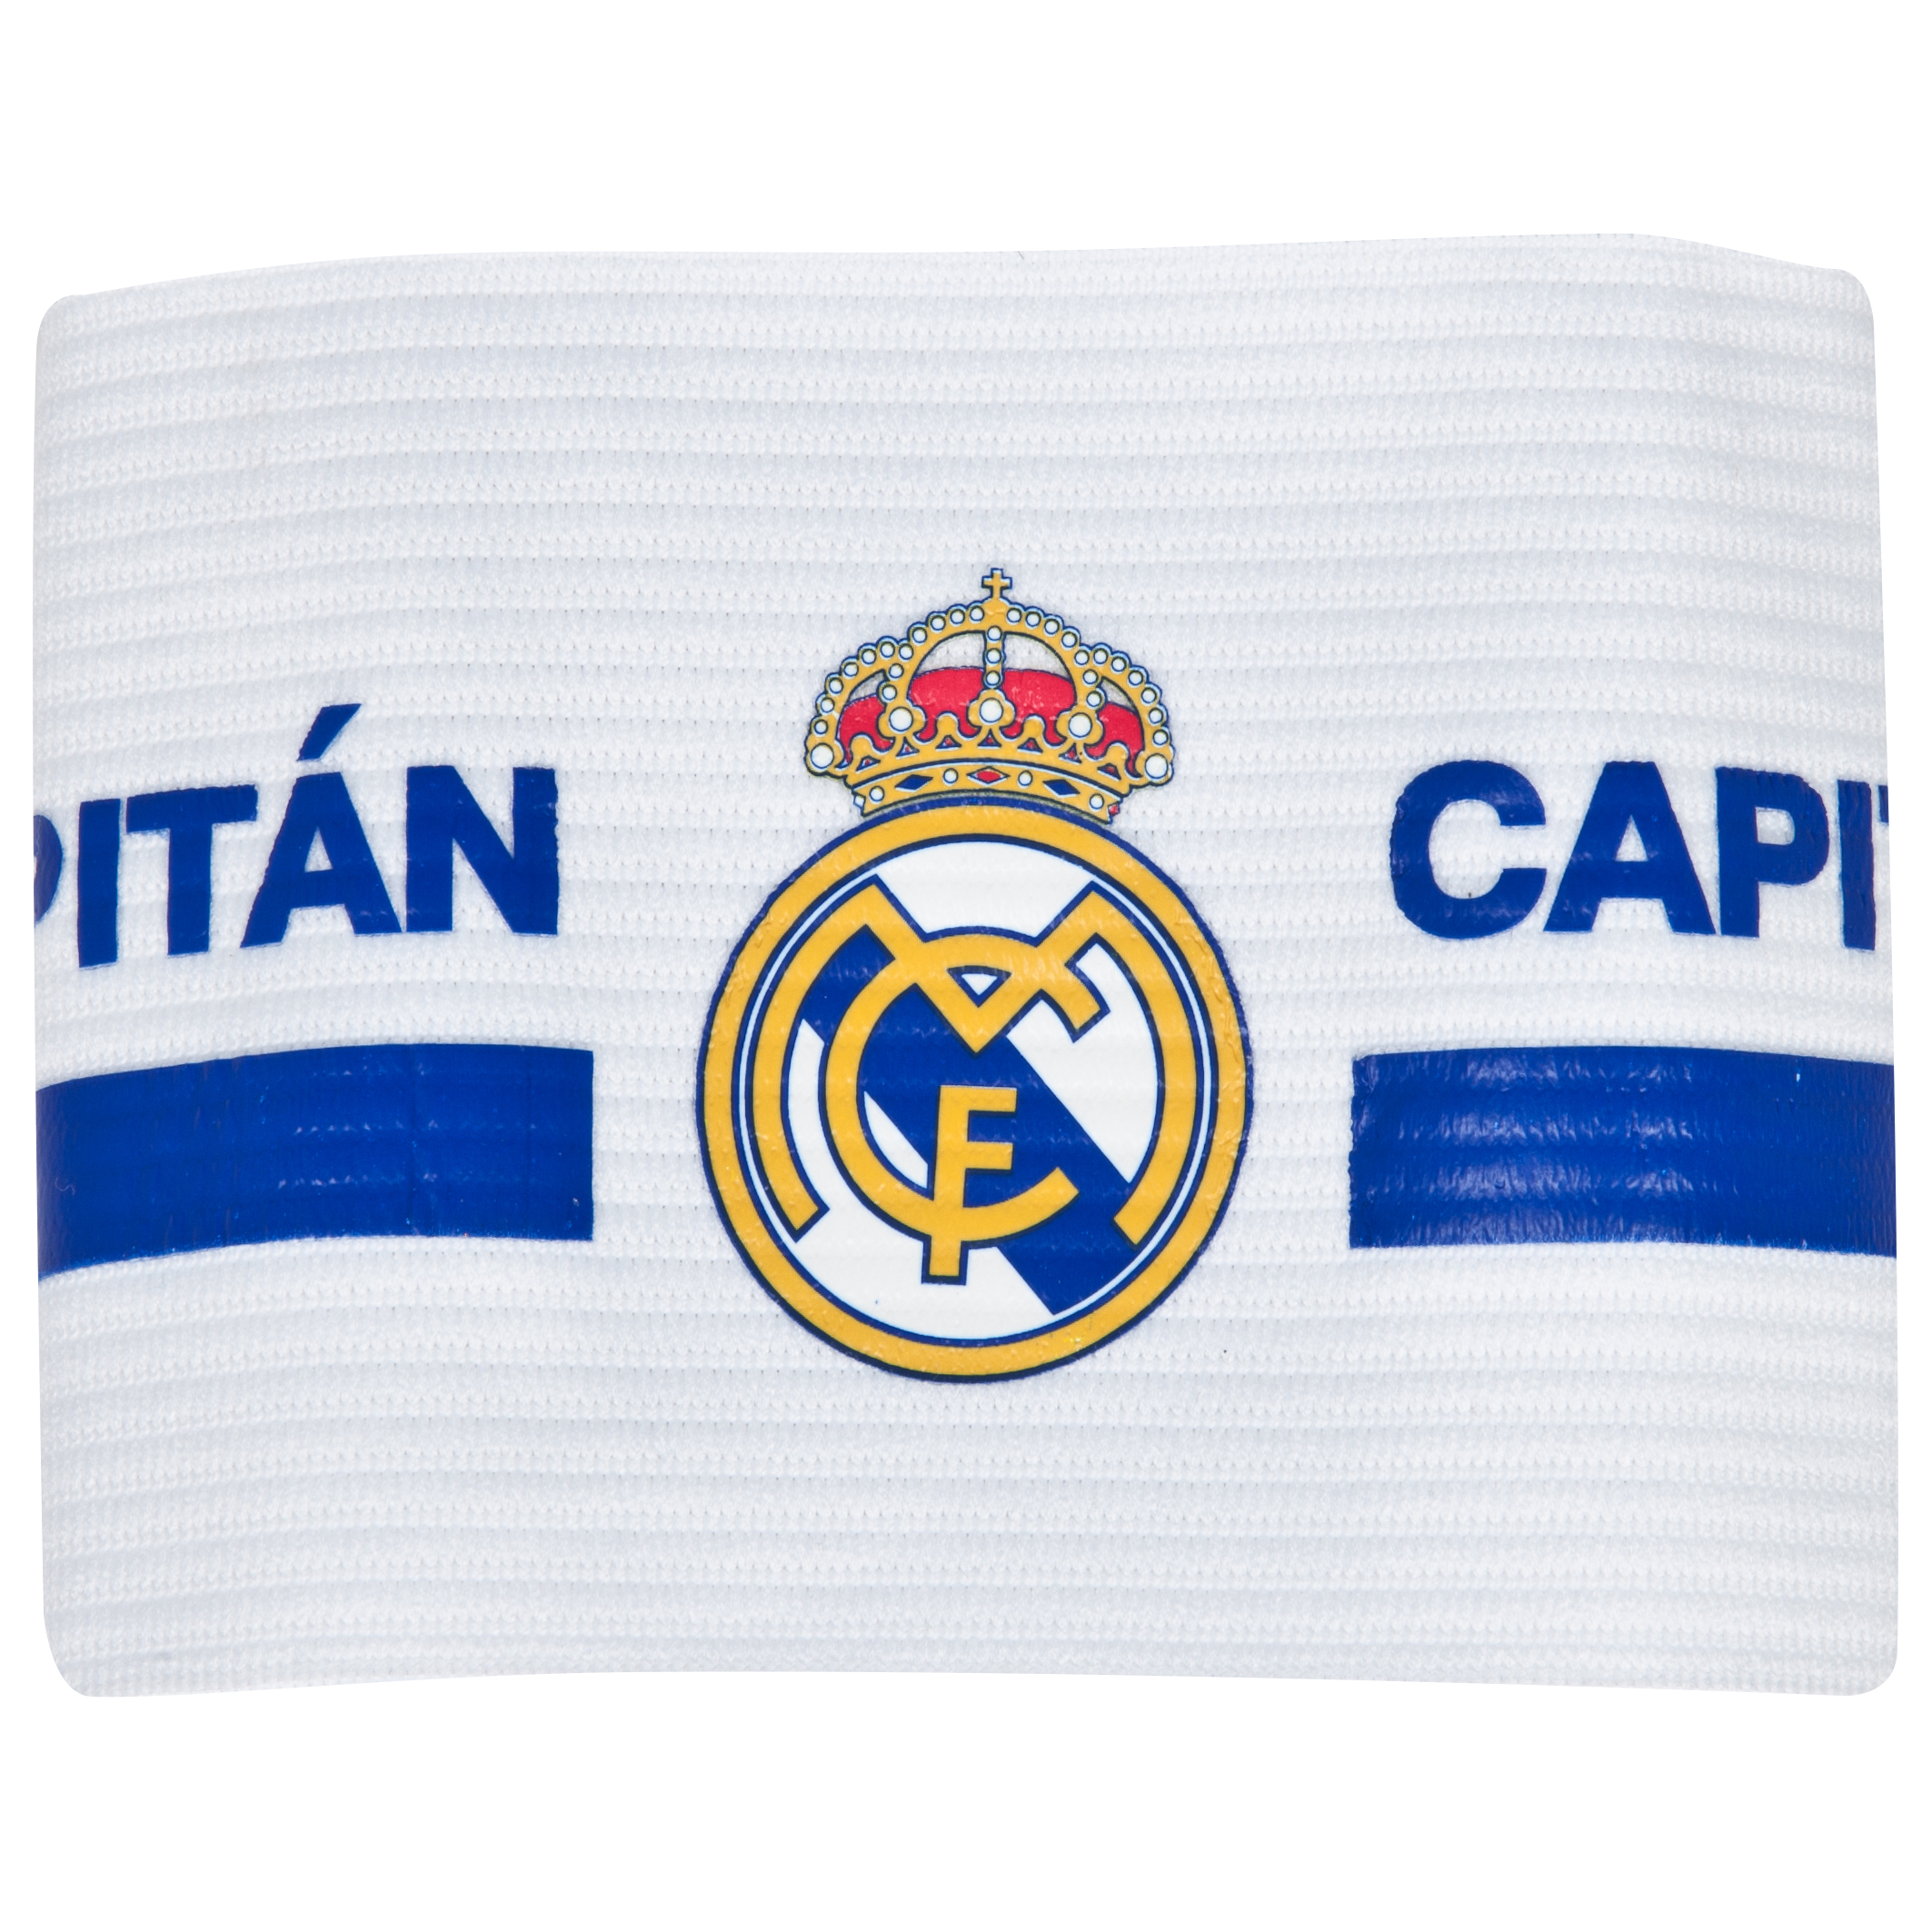 Real Madrid Captains Armband